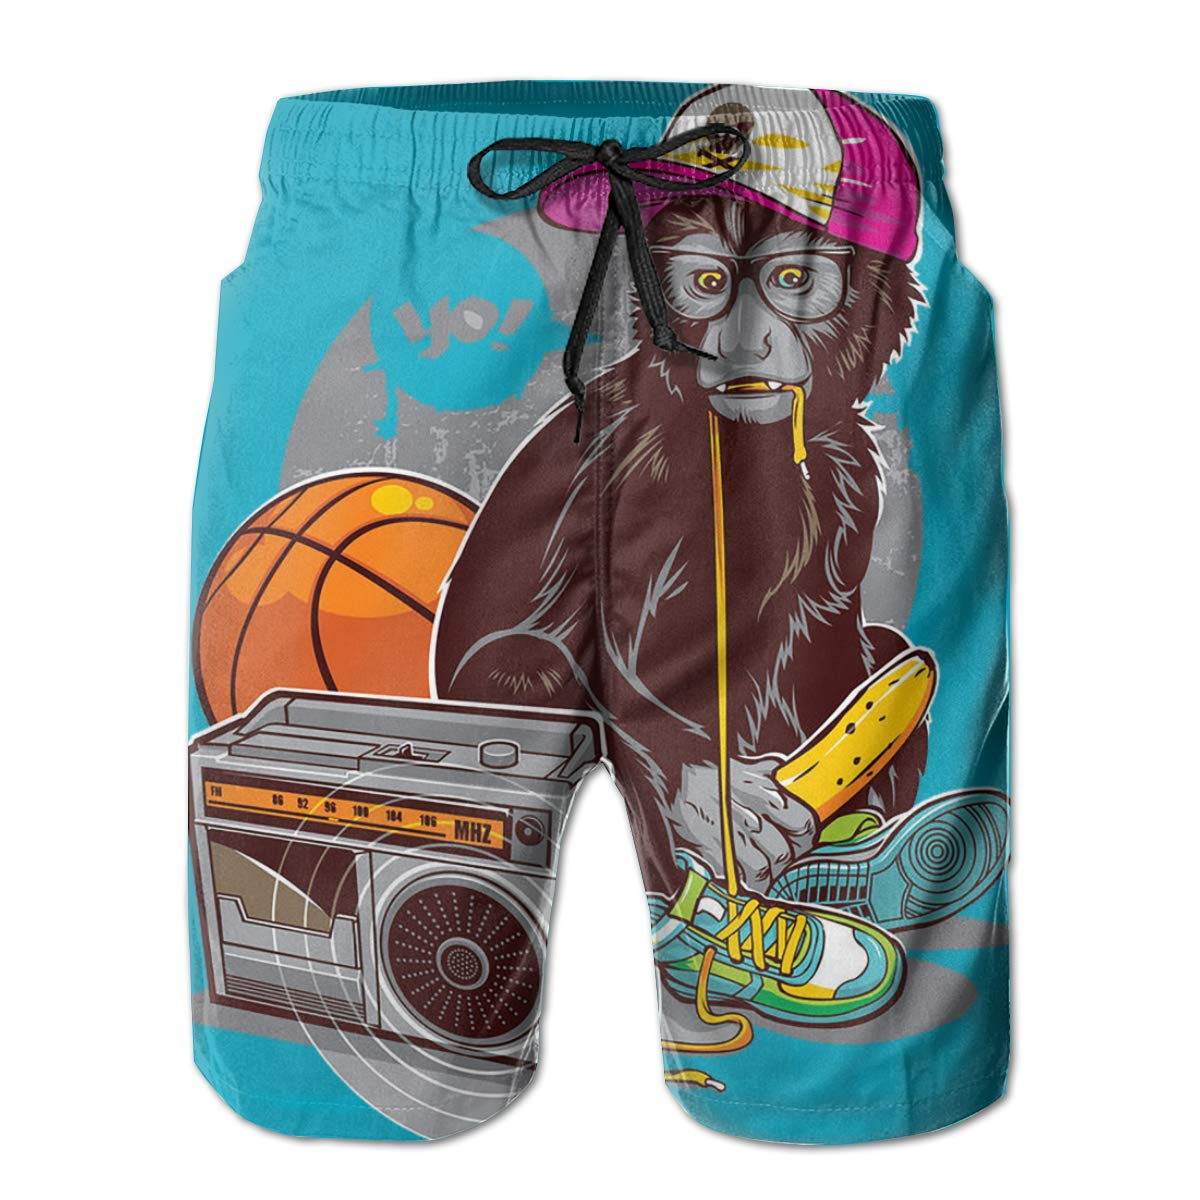 Suitable for Surfing Music Monkey Mens Swimming Pants Hateone Beach Shorts Swimming and Other Marine Sports